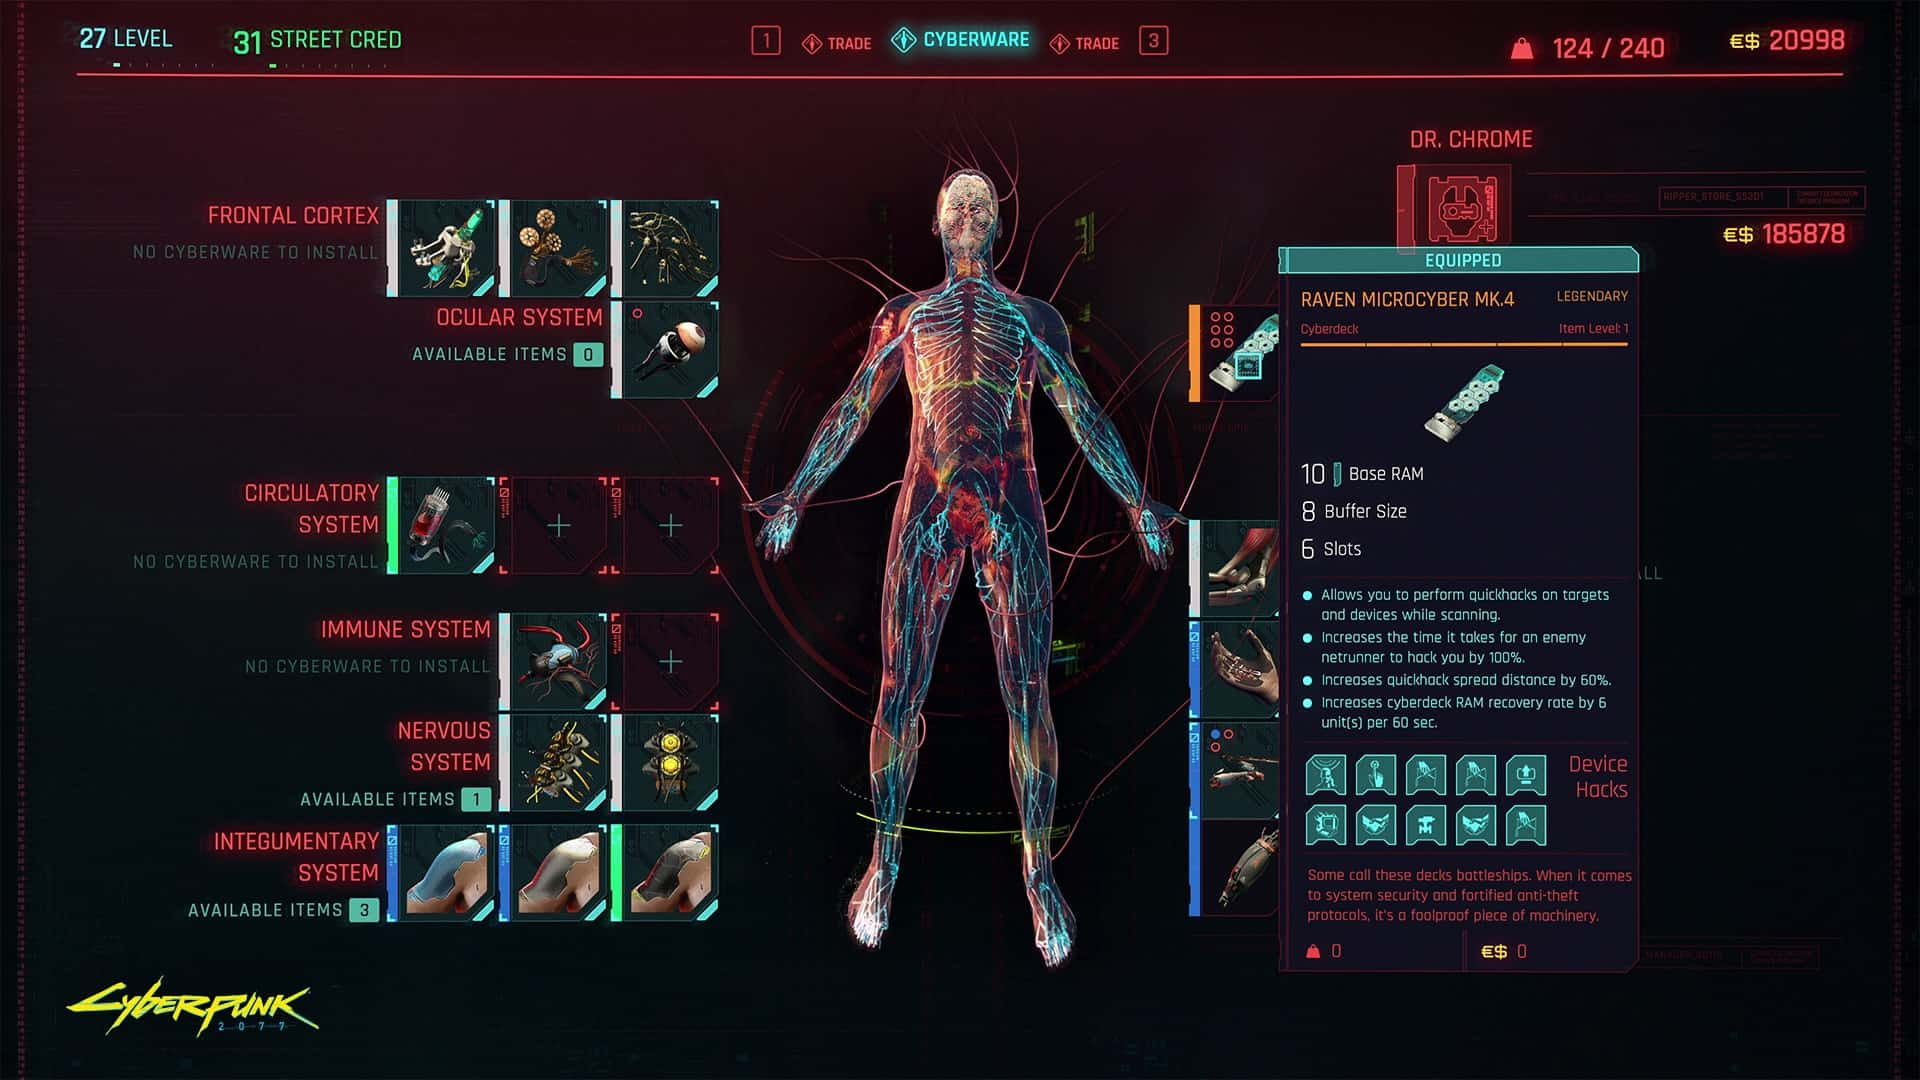 Cyberpunk 2077 Mods : The best Mods For Adding Features